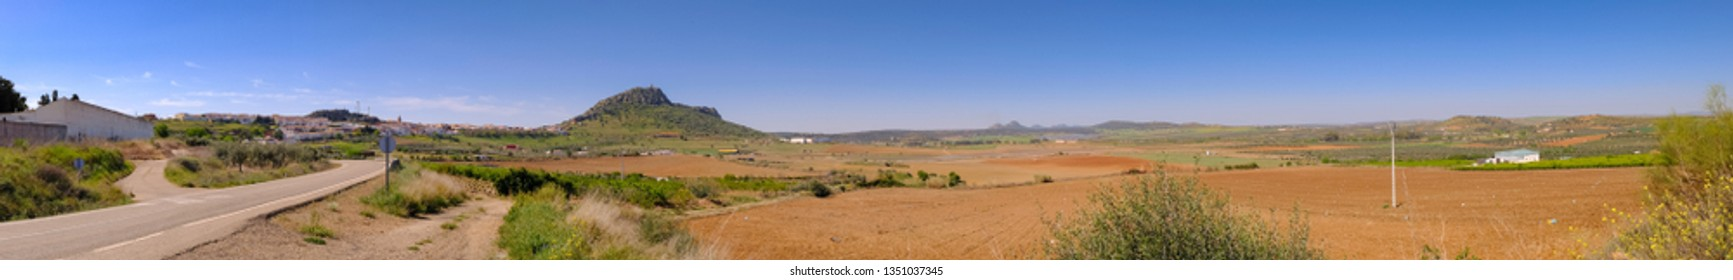 Panoramic view of the village of Alange with its castle on top of the mountain, next to the marsh of the same name, locality famous for its Roman baths and located Very close to the city of Merida.